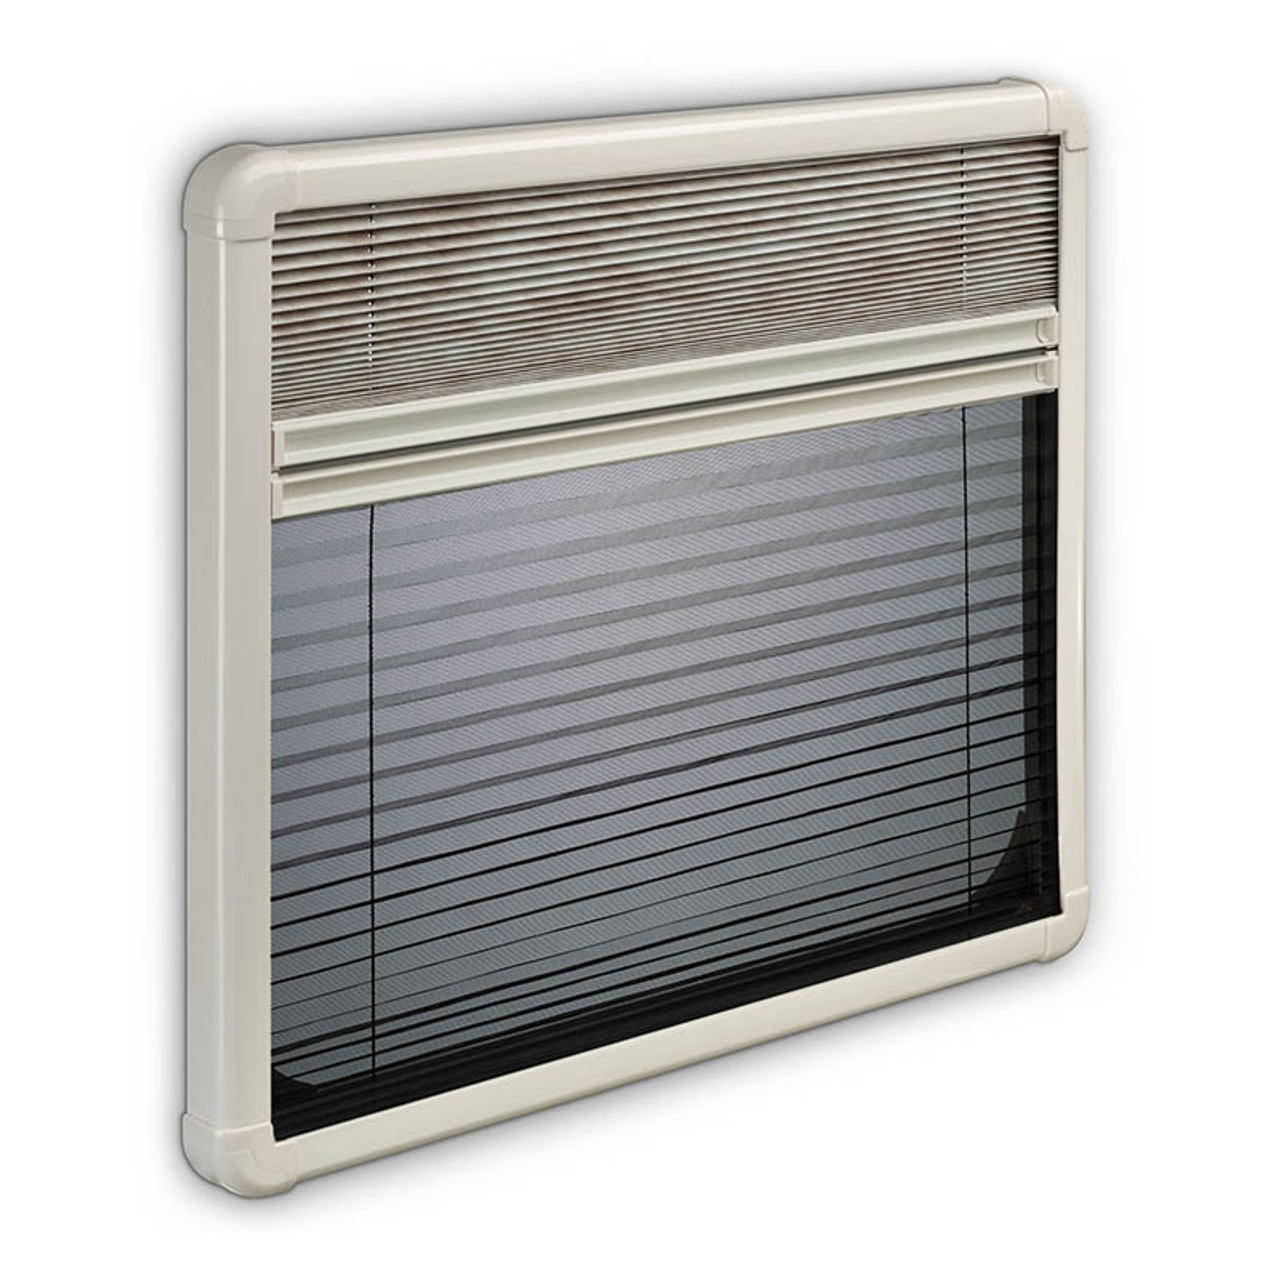 Both the pleated blind and the flyscreen for the Dometic S7P hinged windows can be used together and meet each other so you can have shade and fresh air with protection from flies at the same time, great for use in a caravan or motorhome or campervan.